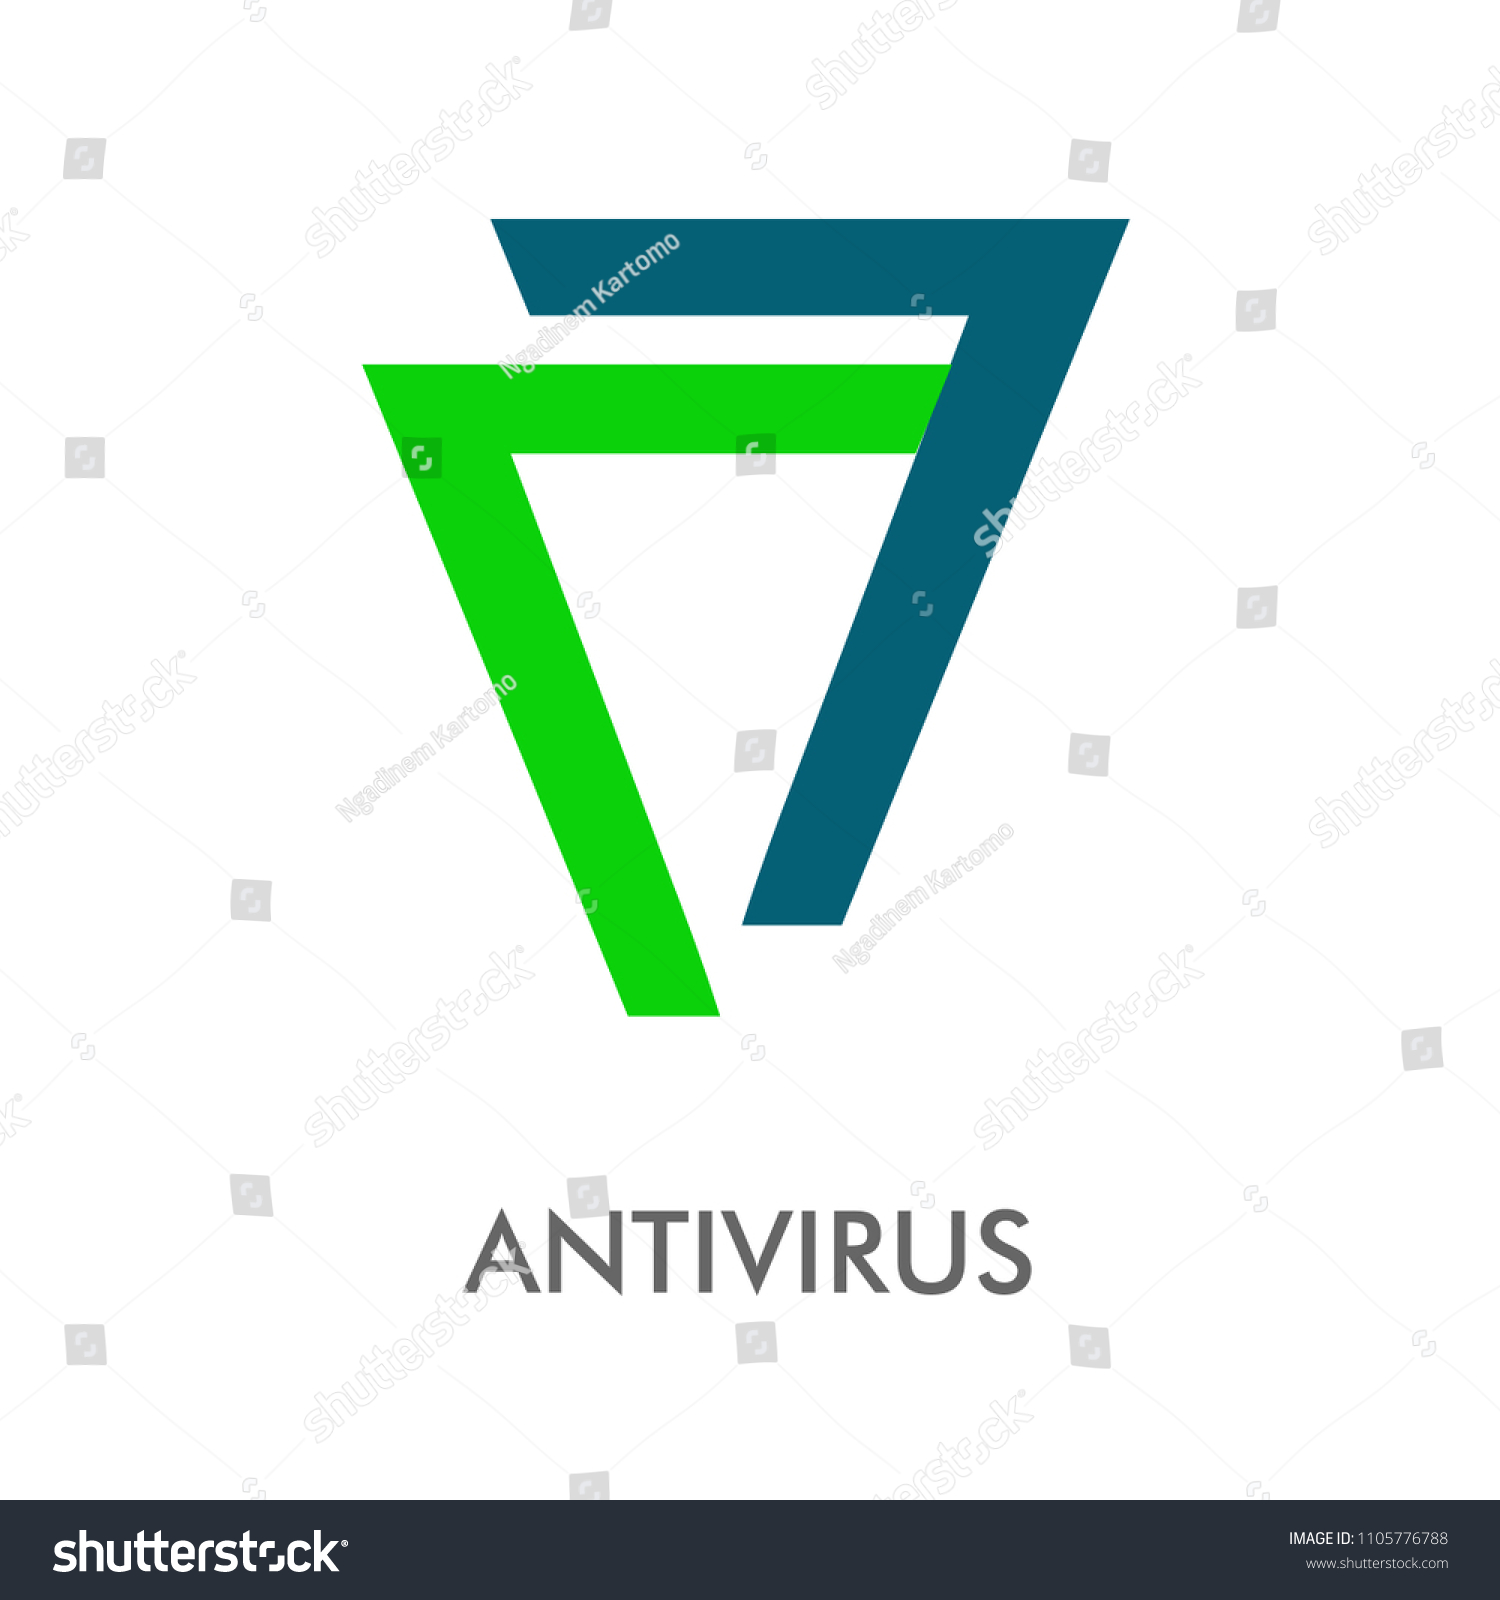 Best Antivirus Abstract Logo Vector Illustration Stock